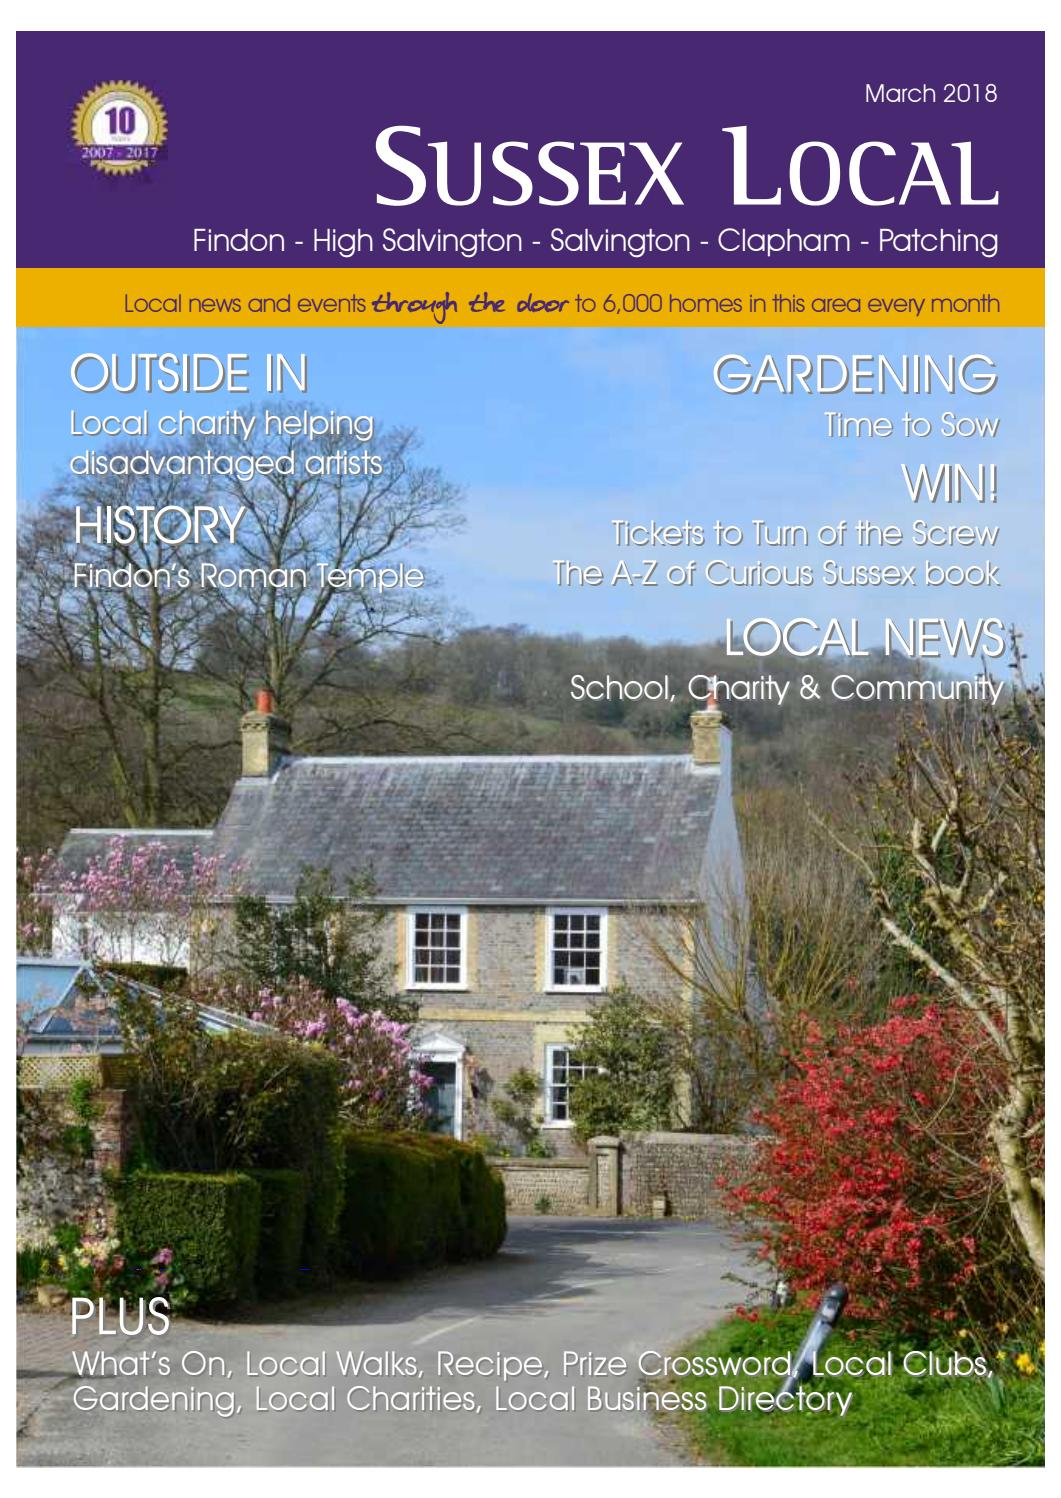 Sussex Local - Findon - March 2018 by Sussex Local Magazine